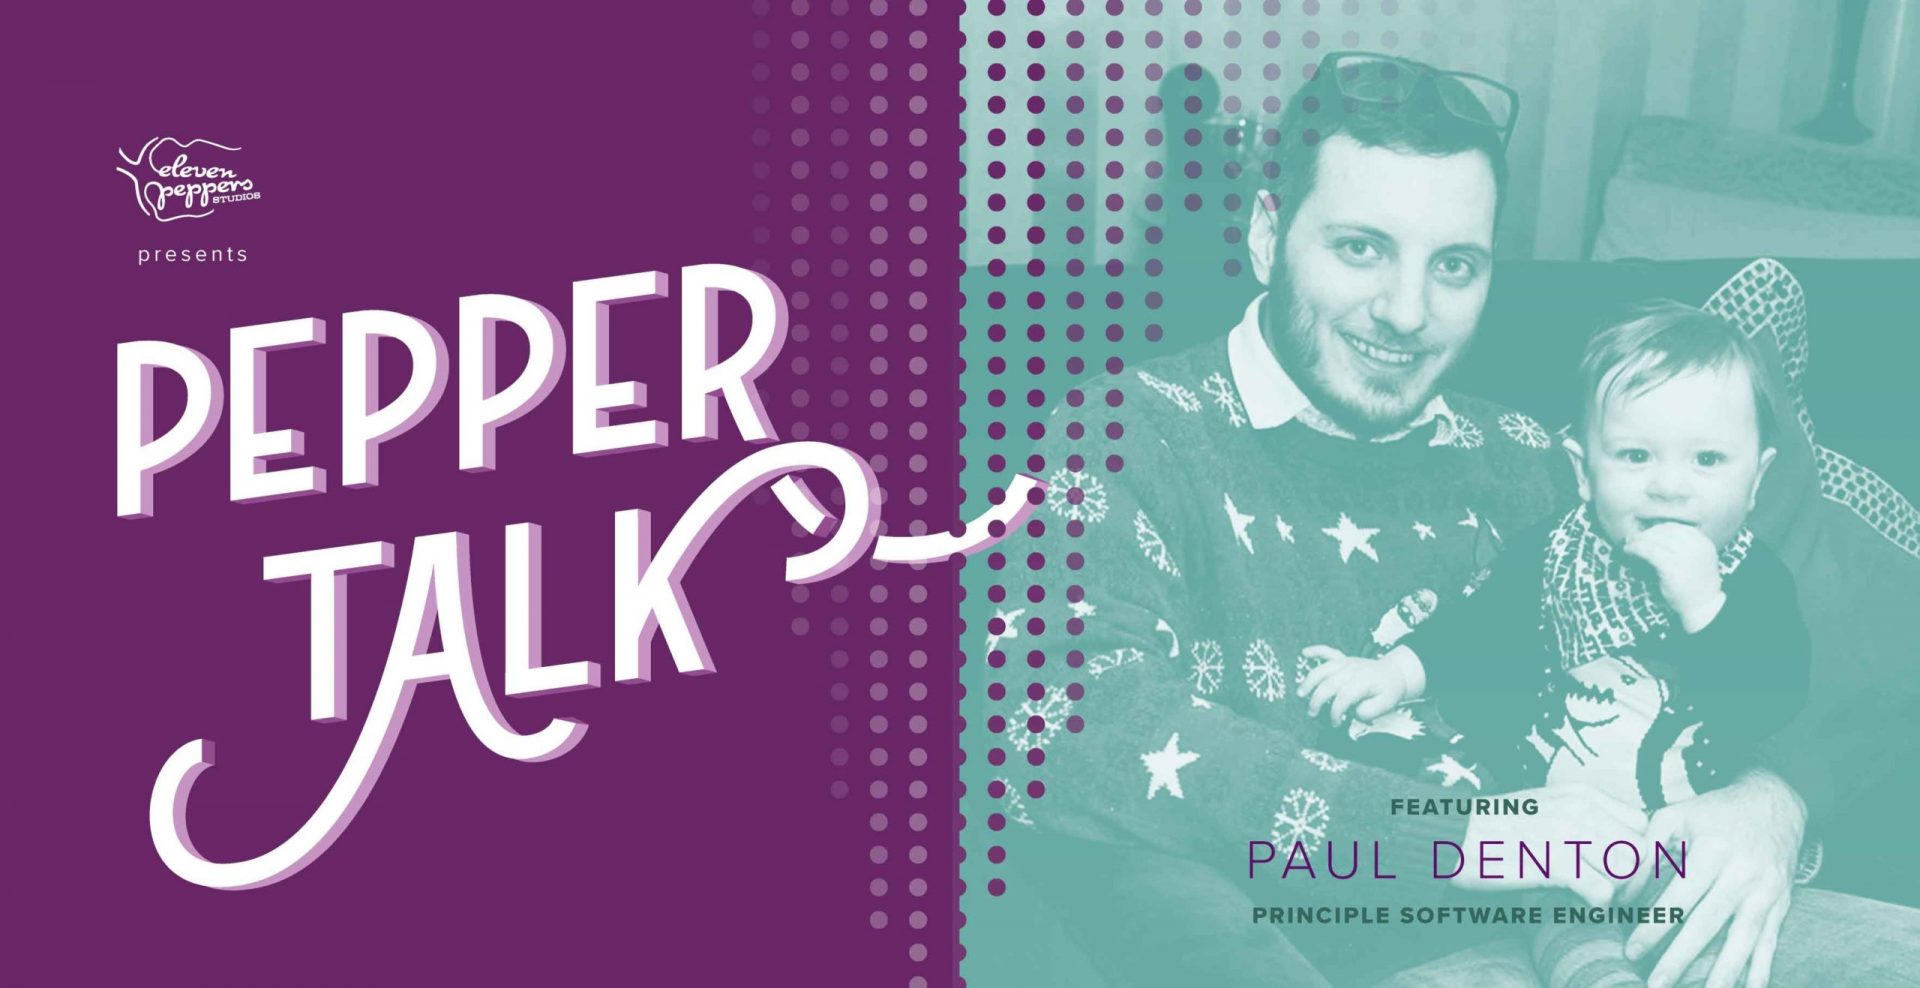 Pepper Talk with Paul Denton